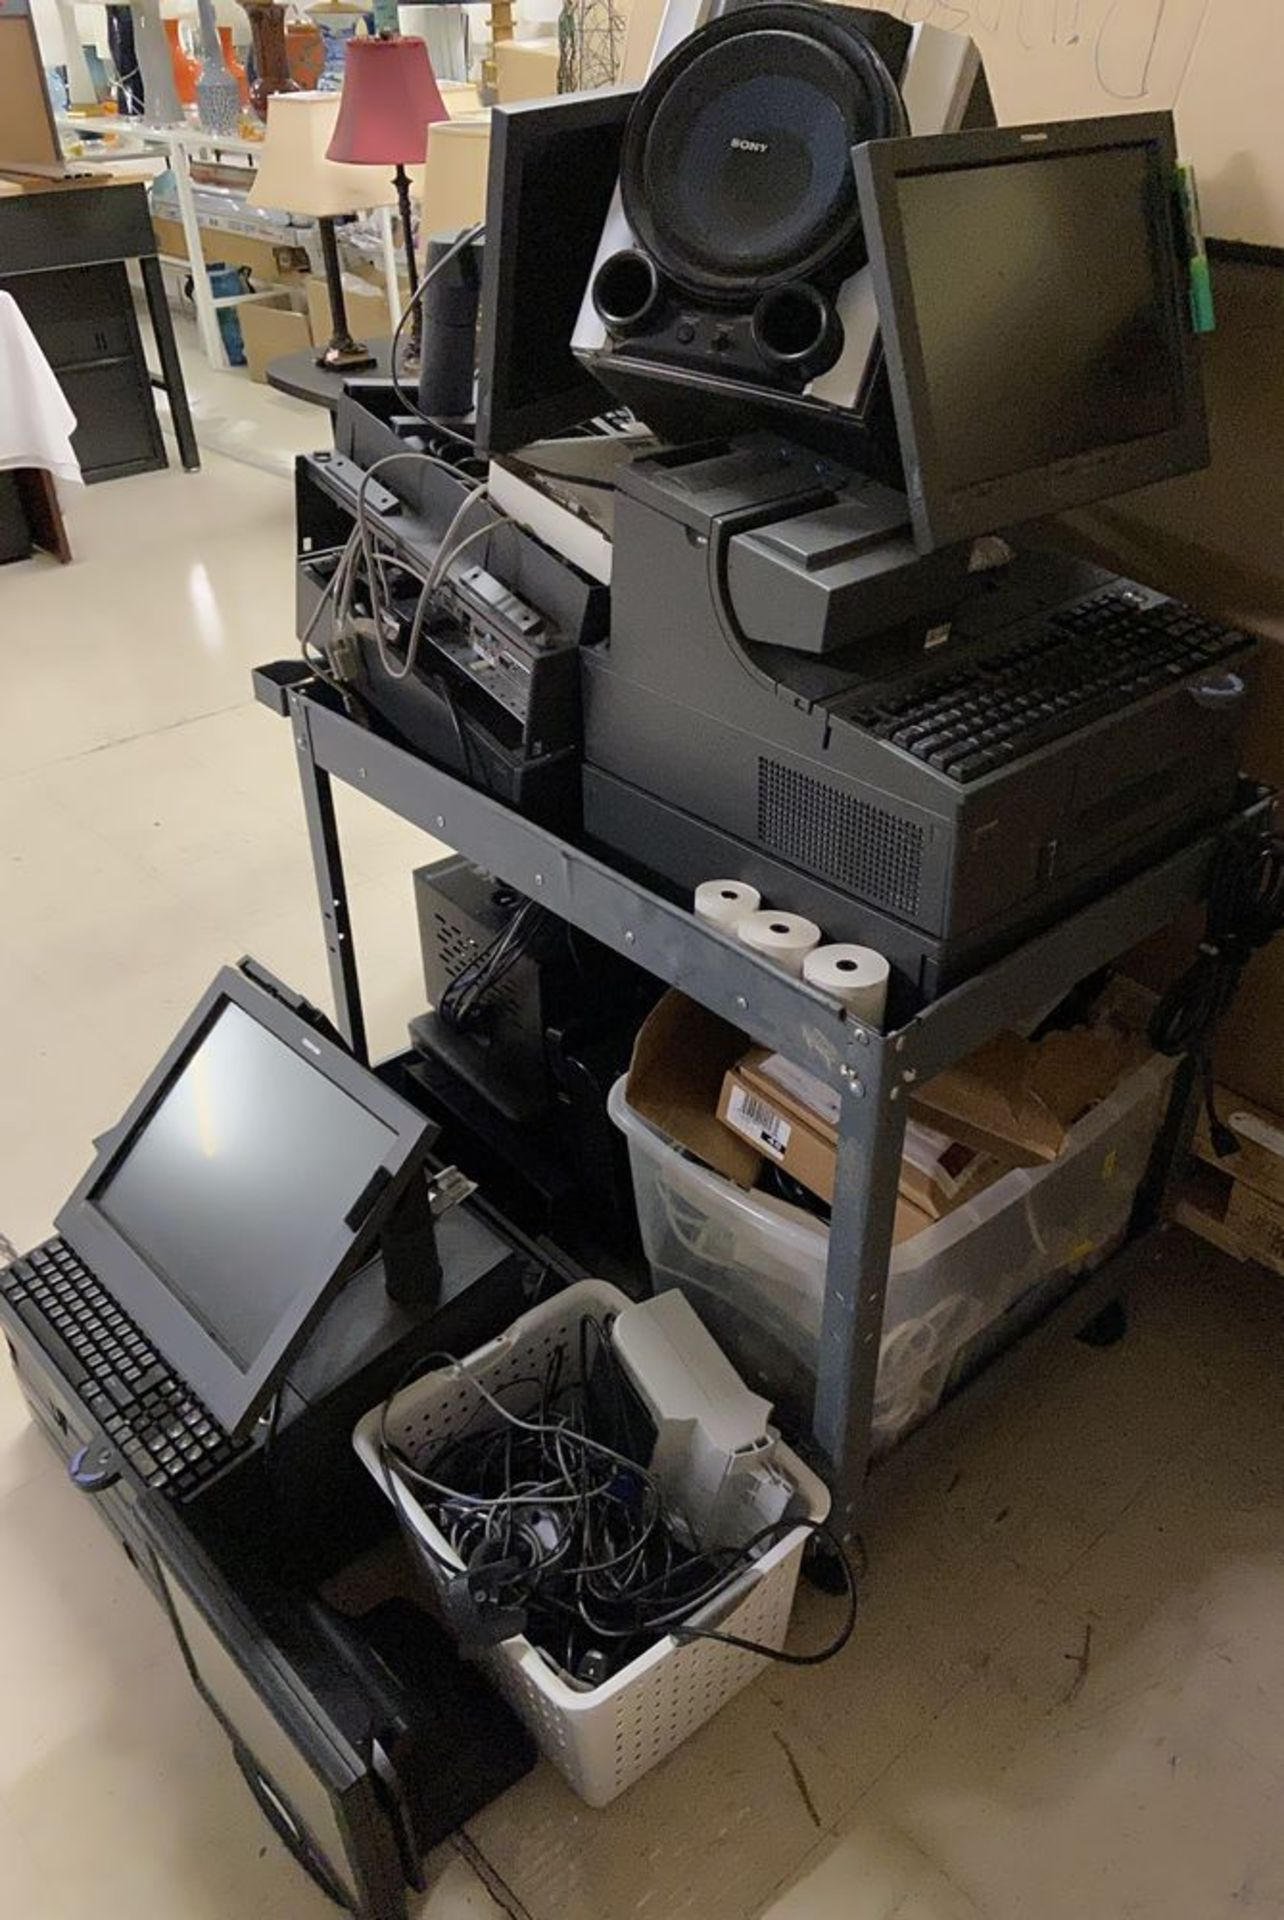 Lot 65 - Pallet of Toshiba POS Cash Registers, Computer Towers and Cables etc